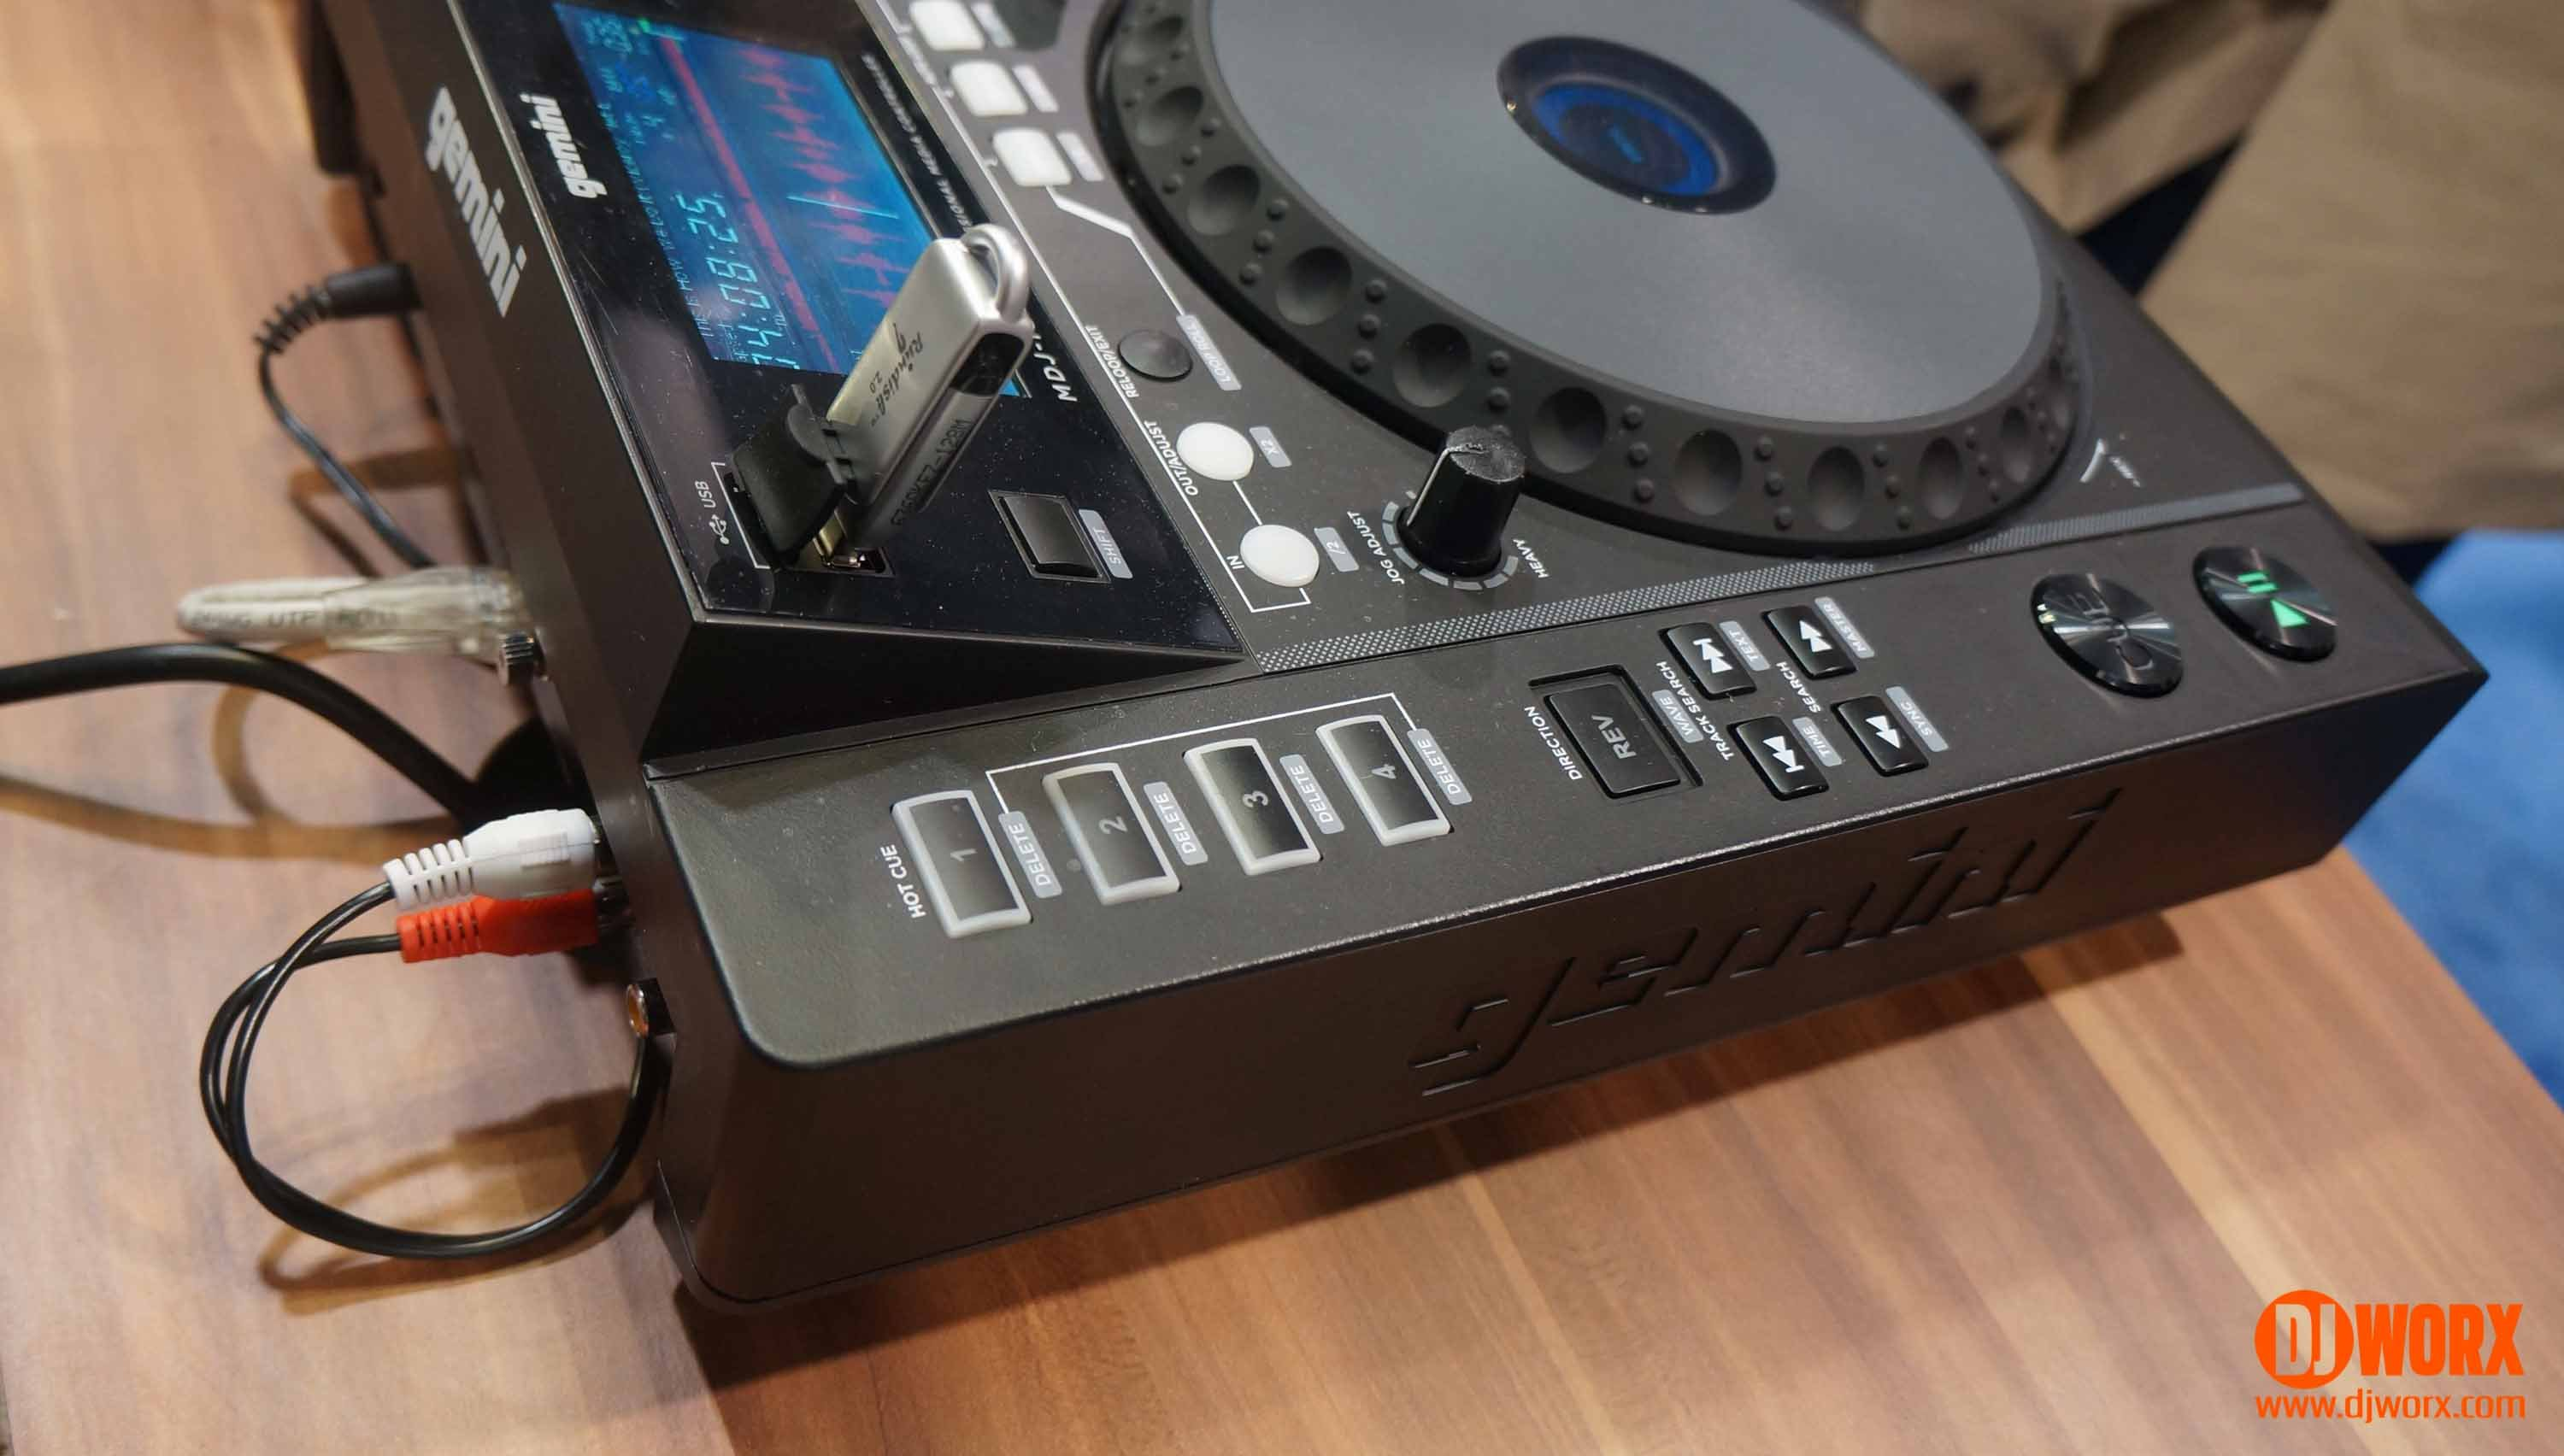 Gemini MDJ-1000 CDJ media player NAMM 2015 (1)